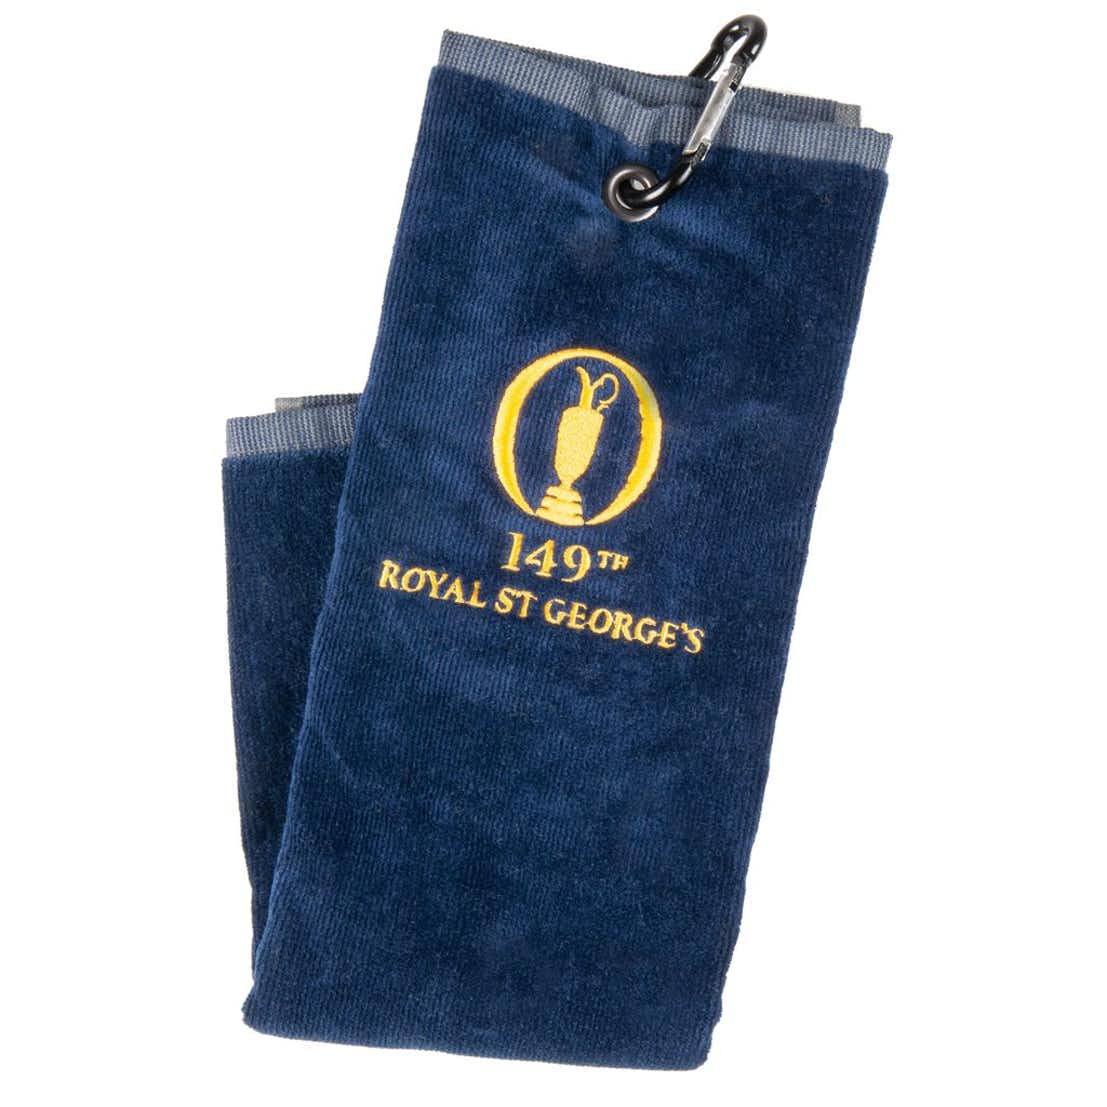 149th Royal St George's Standard Trifold Towel - Navy